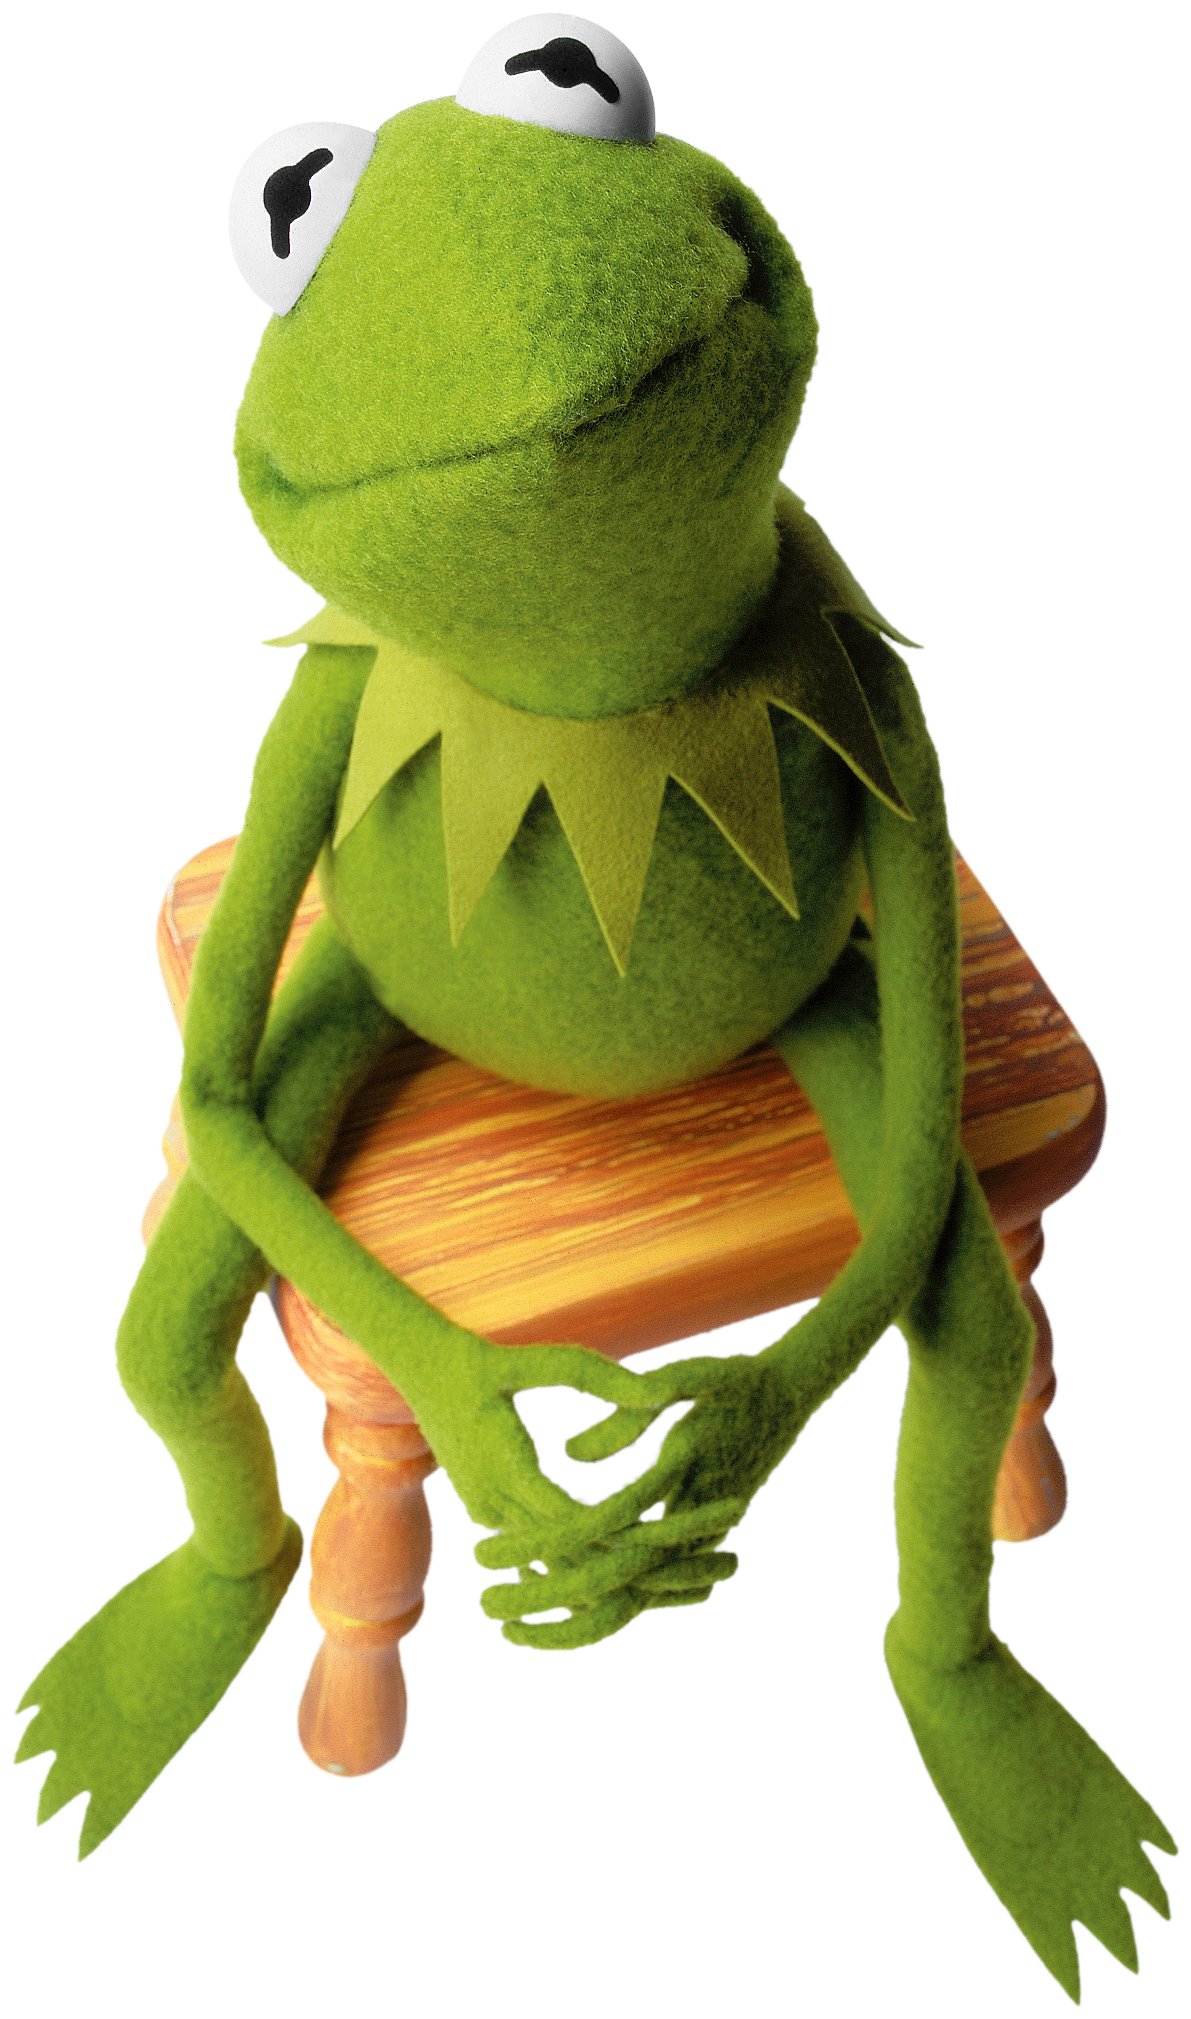 Image stool muppet wiki. Kermit memes png svg library library